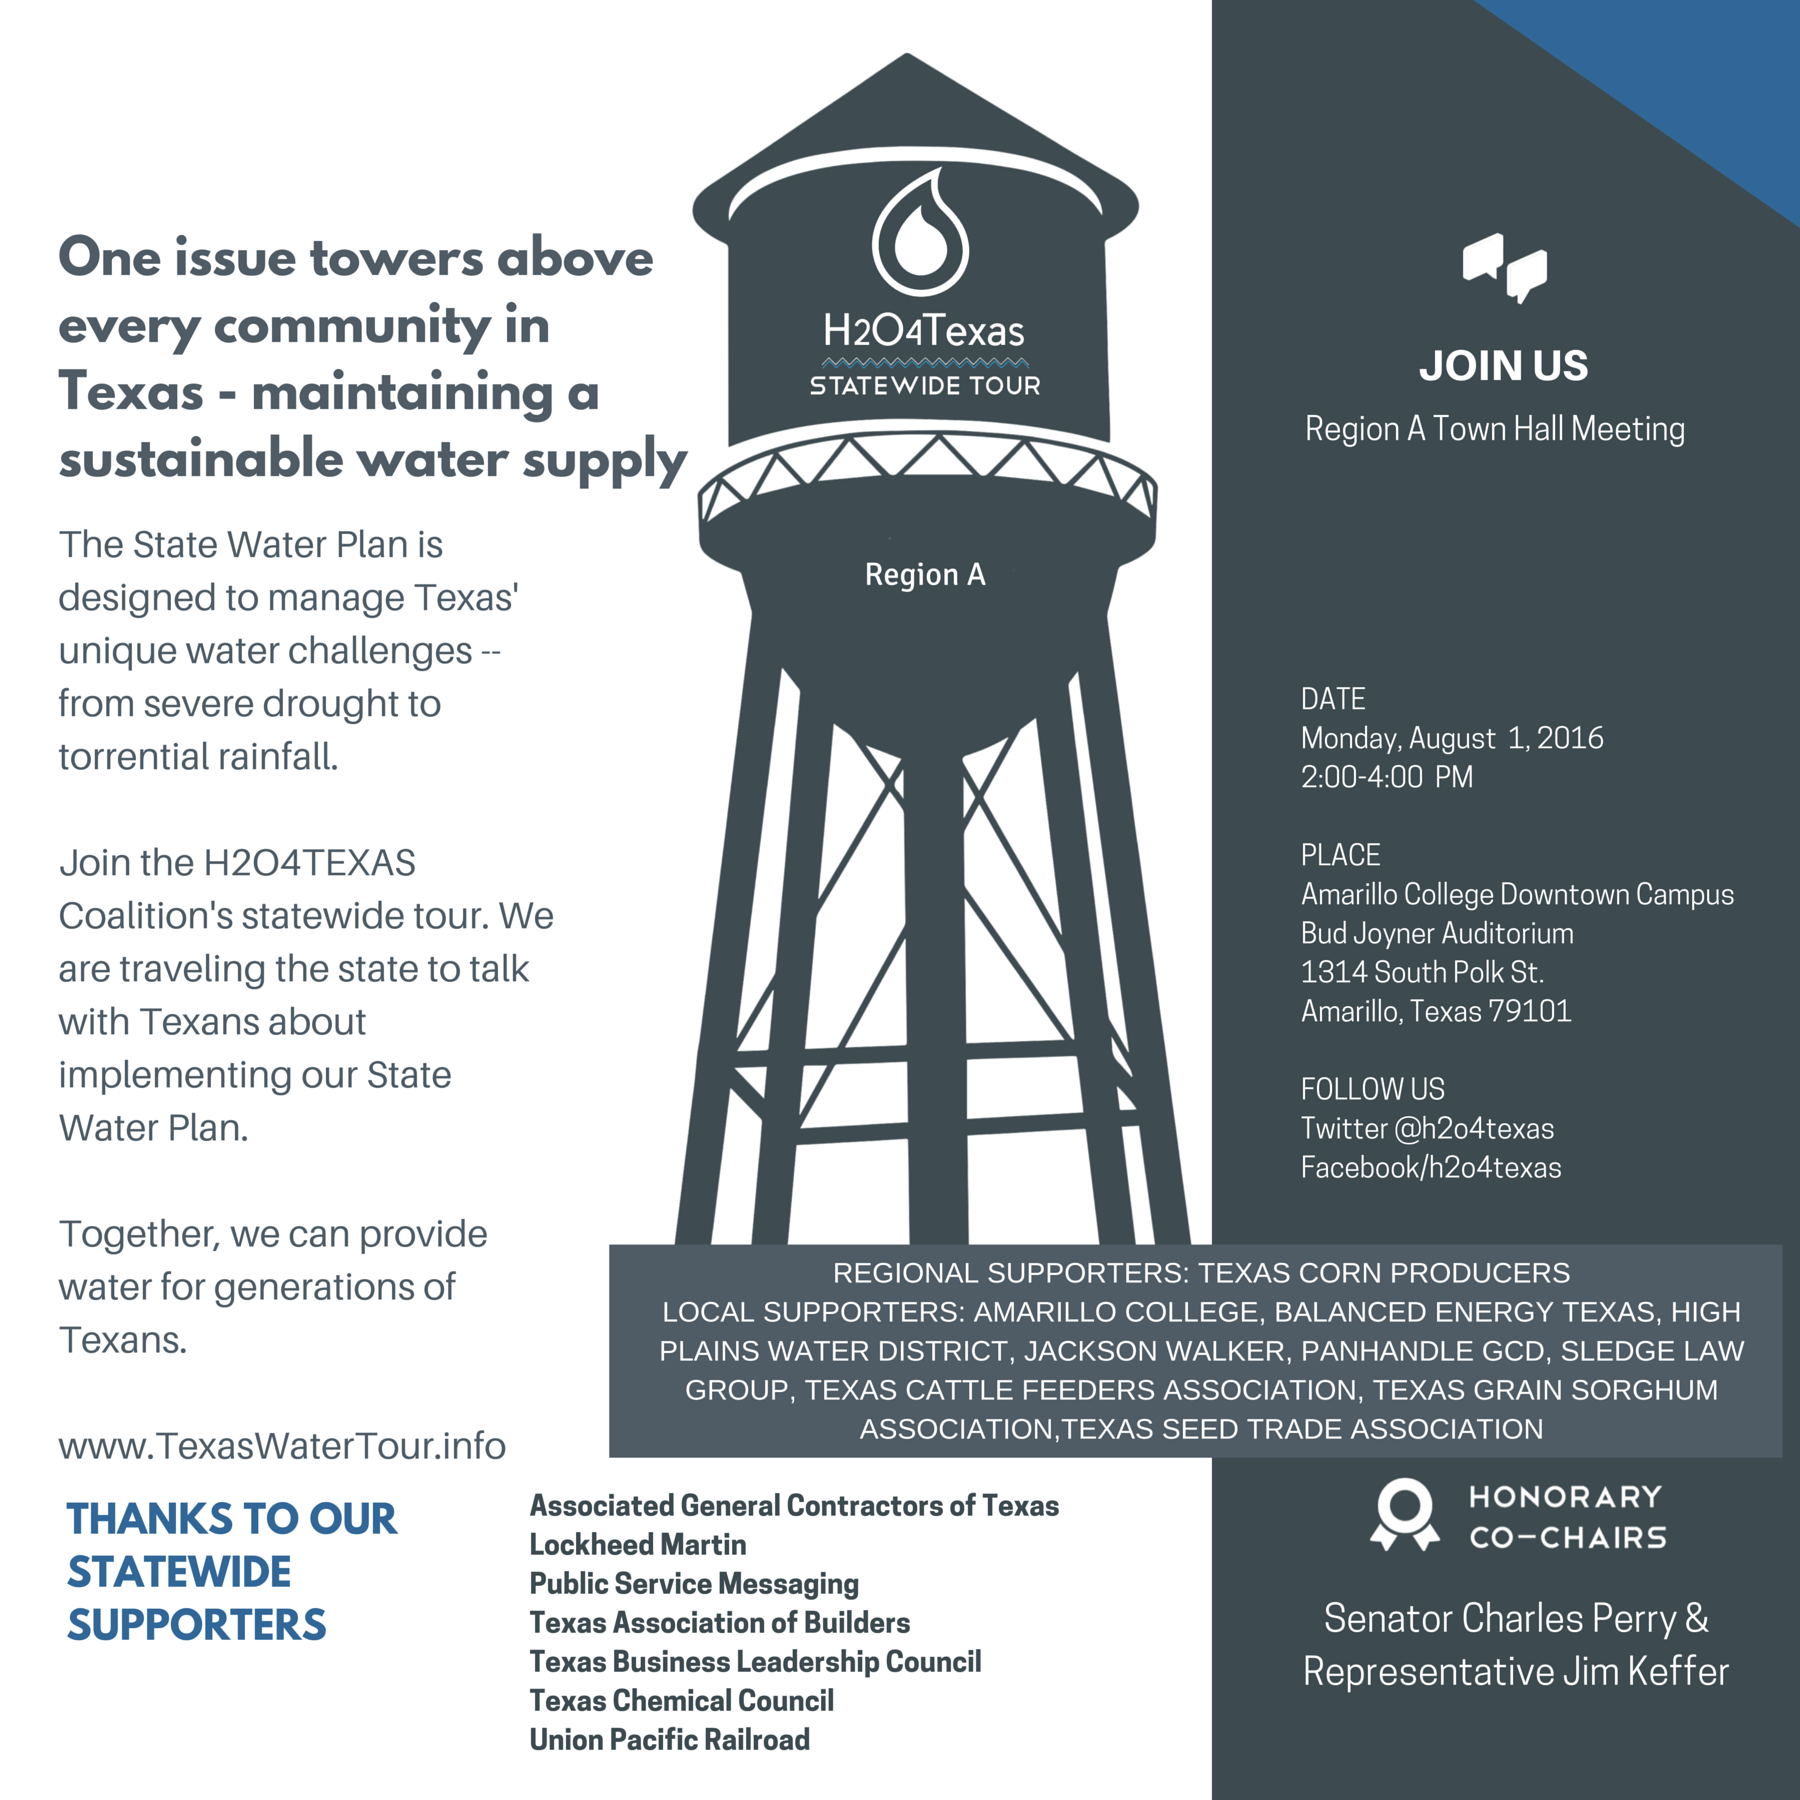 Region A Town Hall Meeting Poster